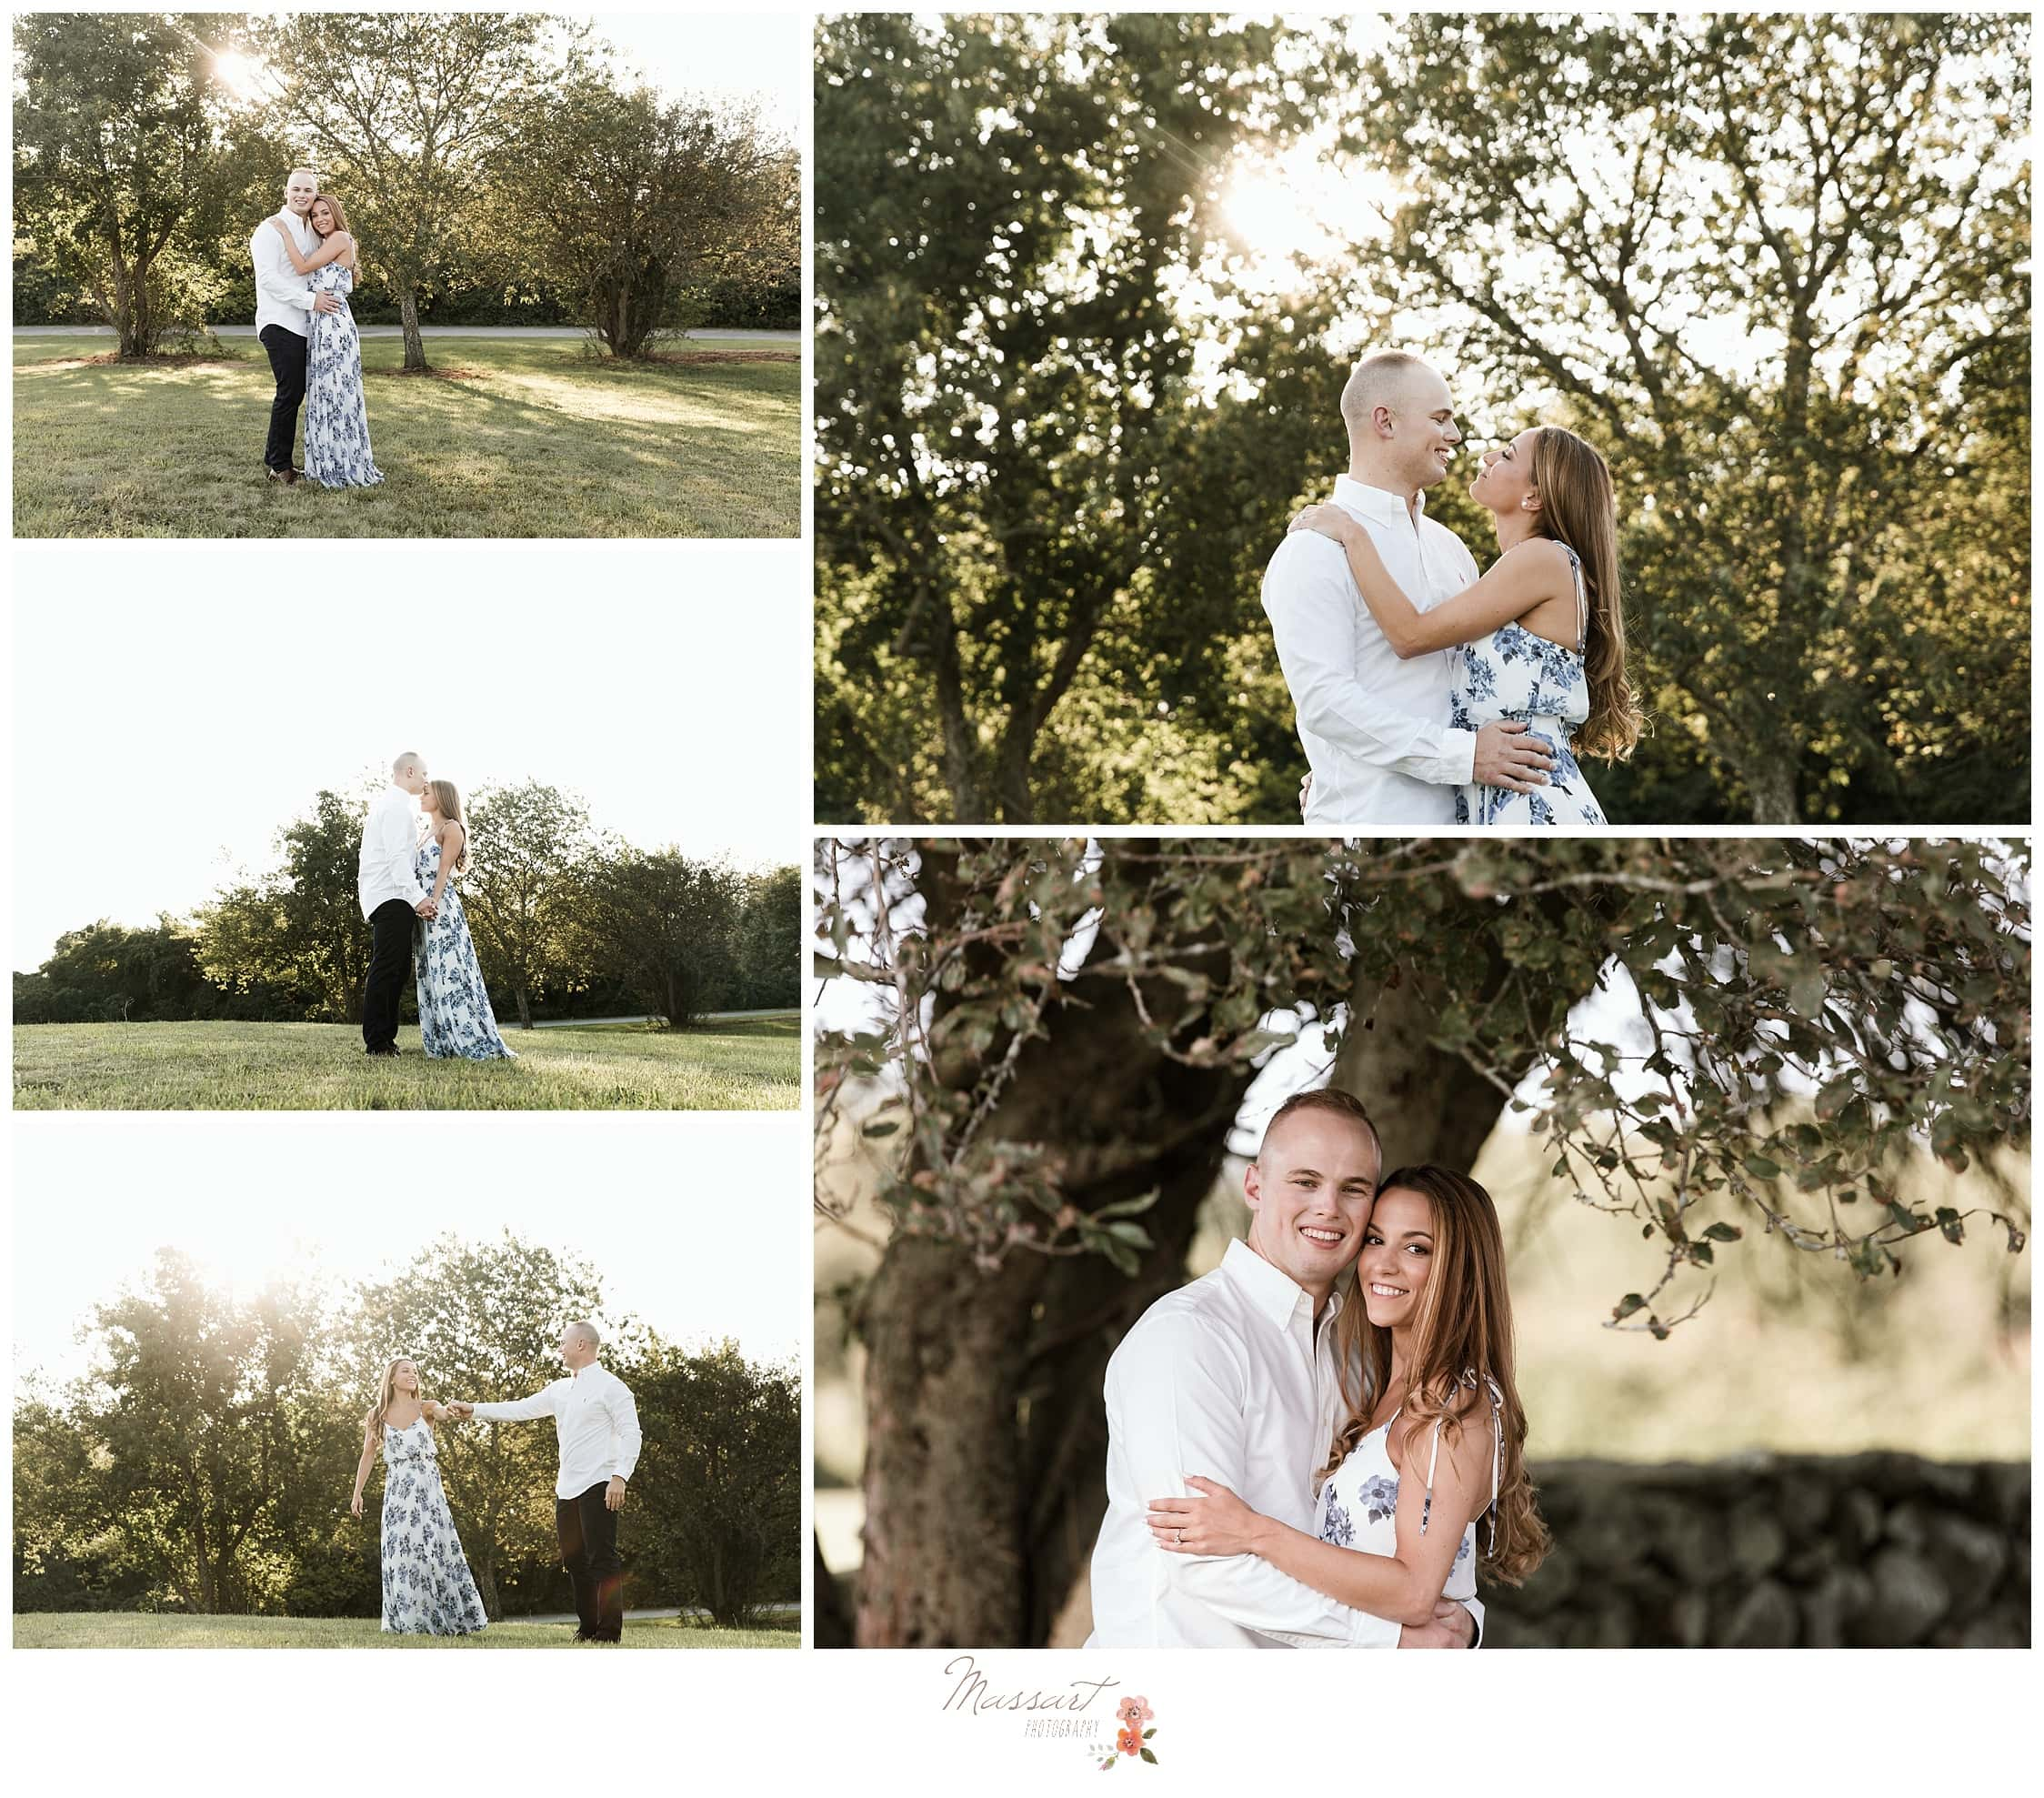 Collage of portraits during the engaged couple's portrait session outdoors in a field during the summertime photographed by Massart Photography RI